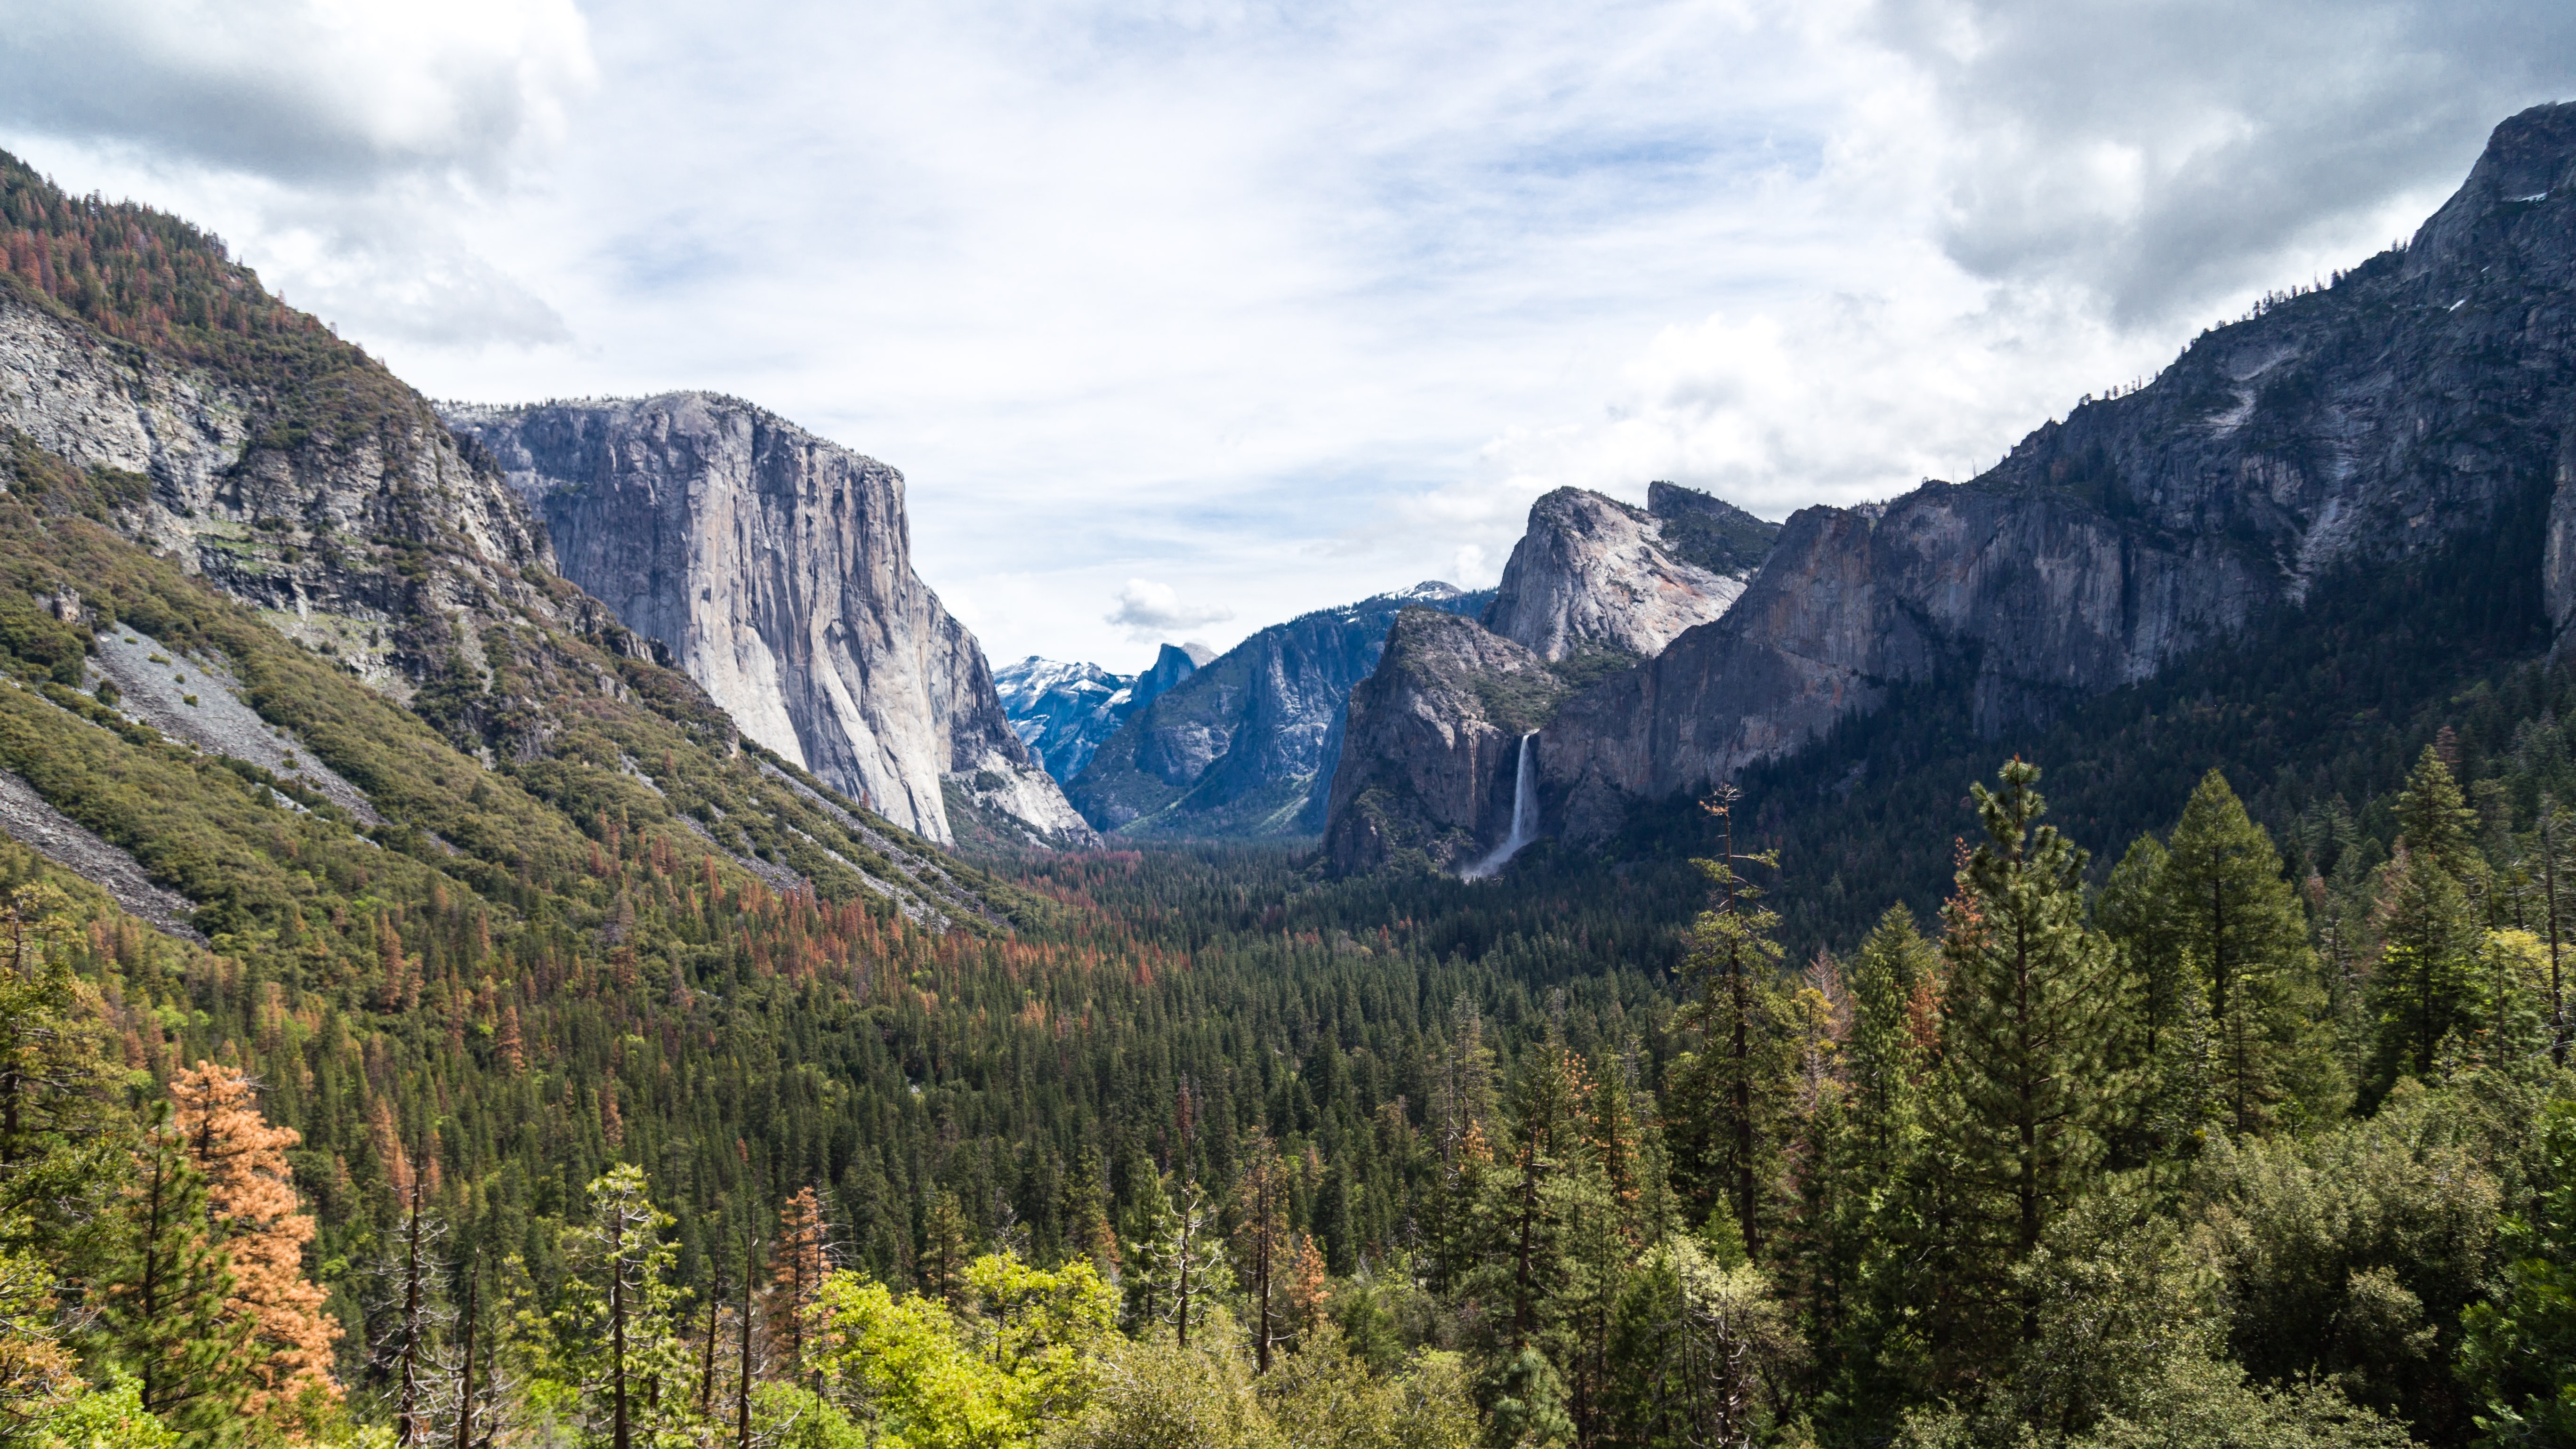 The mountains and forest in Yosemite National Park